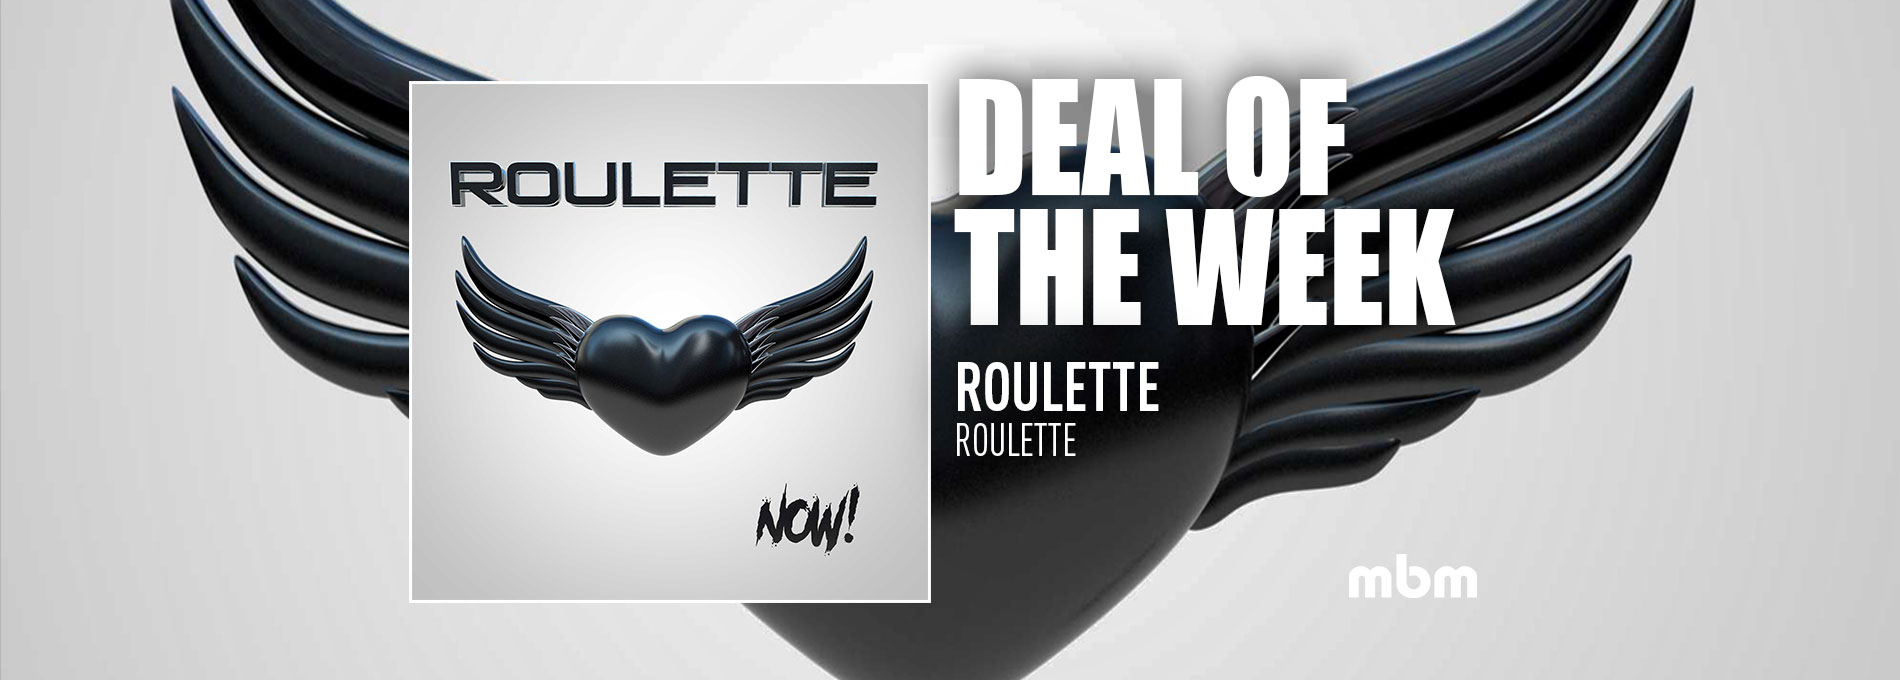 Deal Of The Week: ROULETTE - Now!